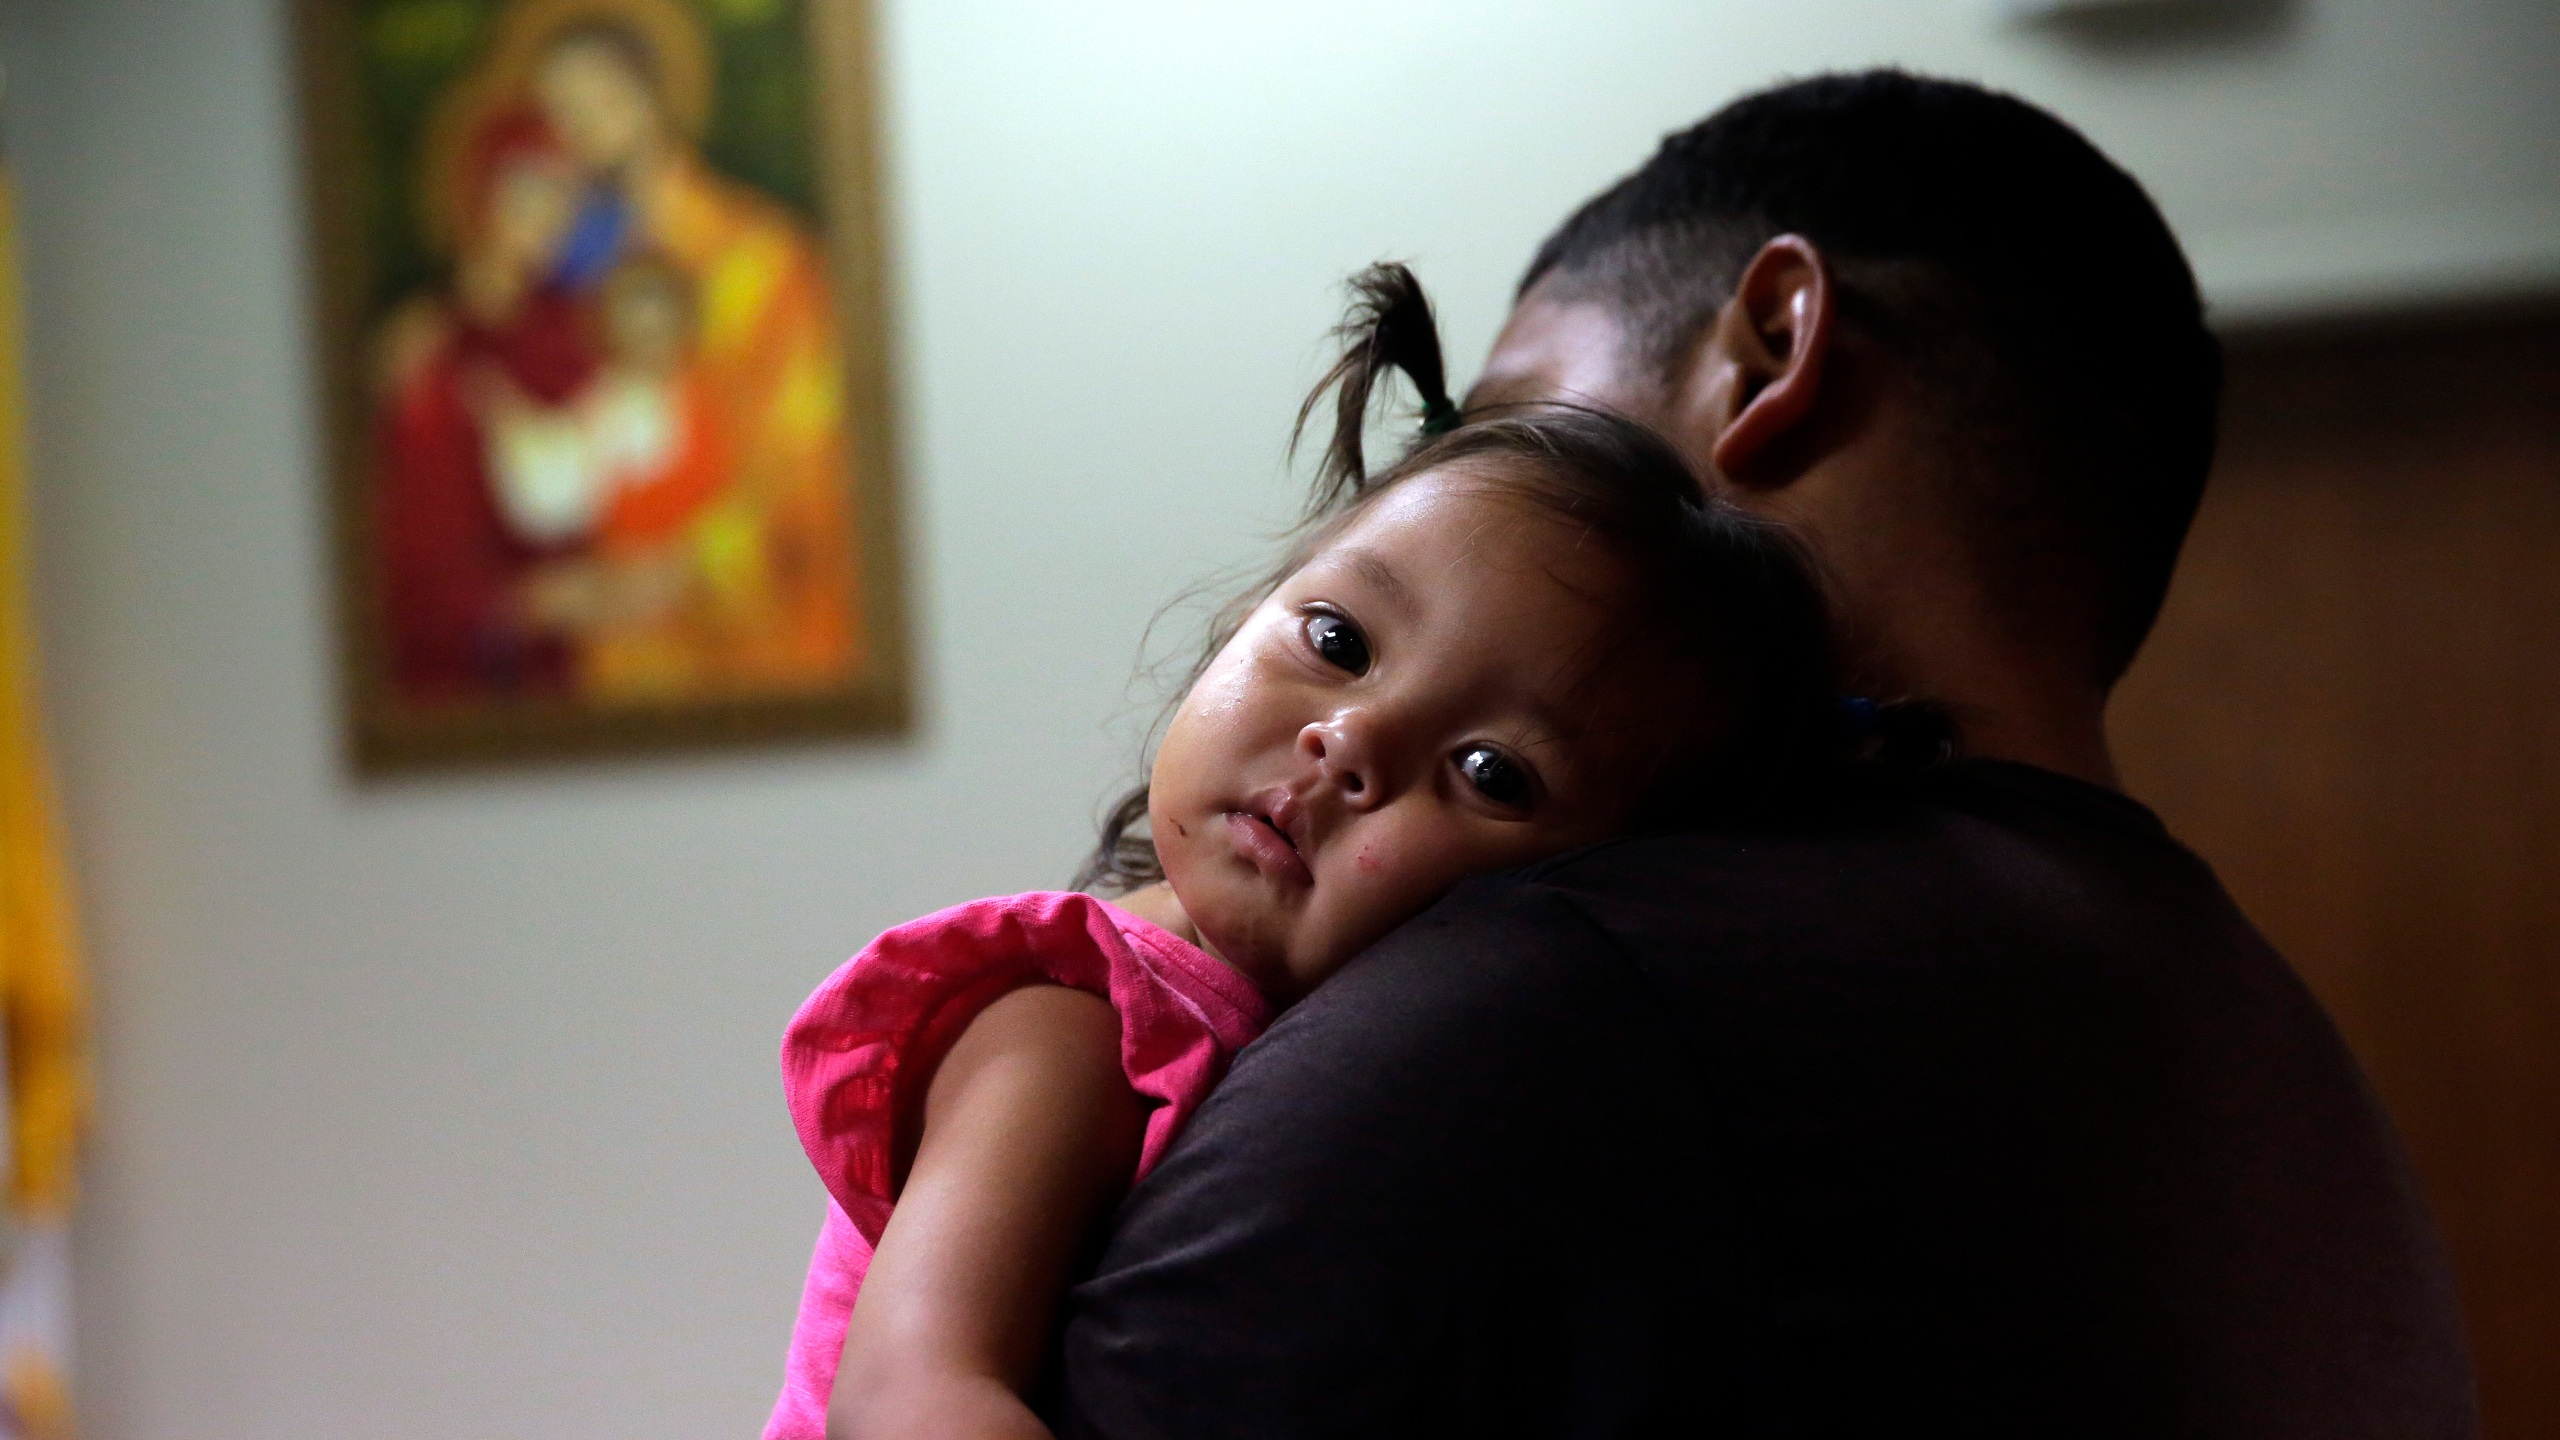 Immigration_Separating_Families_37755-159532.jpg17021281